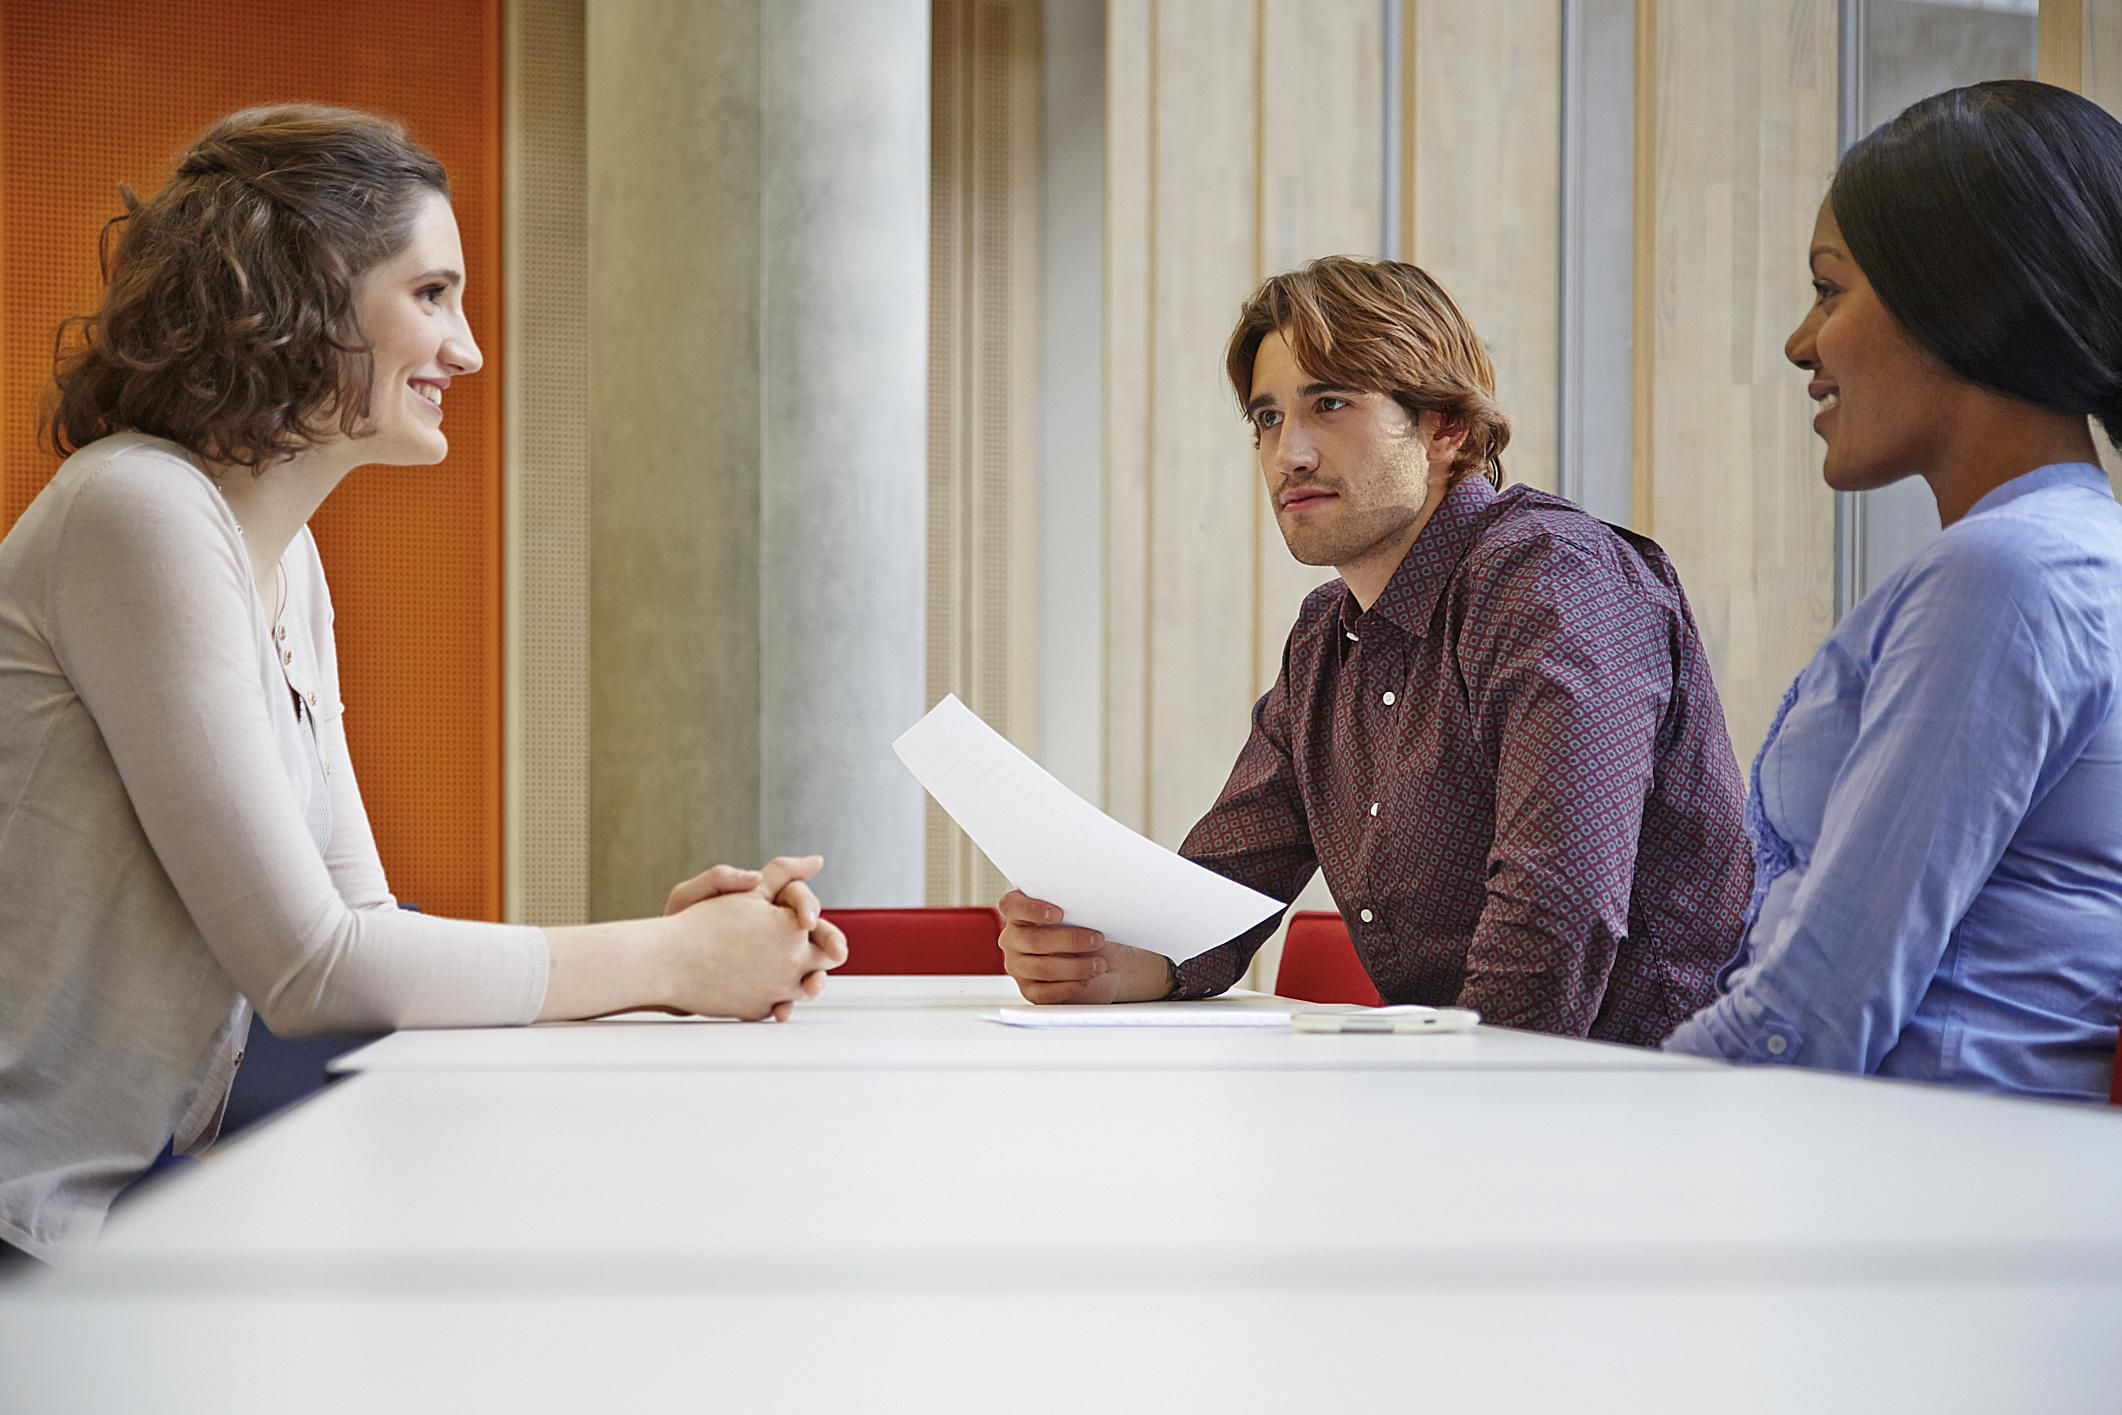 interview tips for unemployed job seekers - Facing An Interview Tips And Techniques